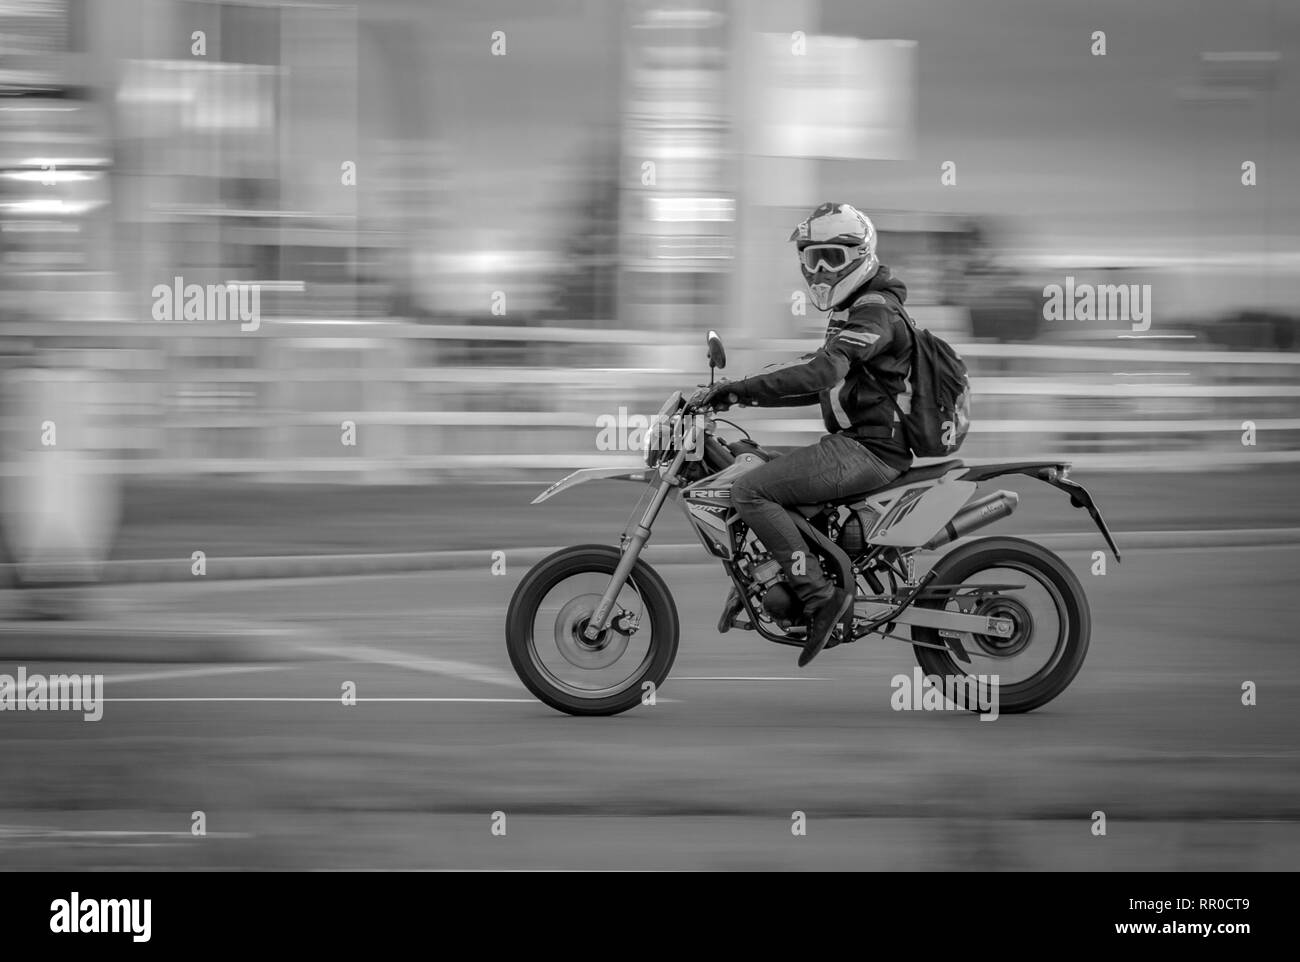 Motor bike rider with motion blur - Stock Image